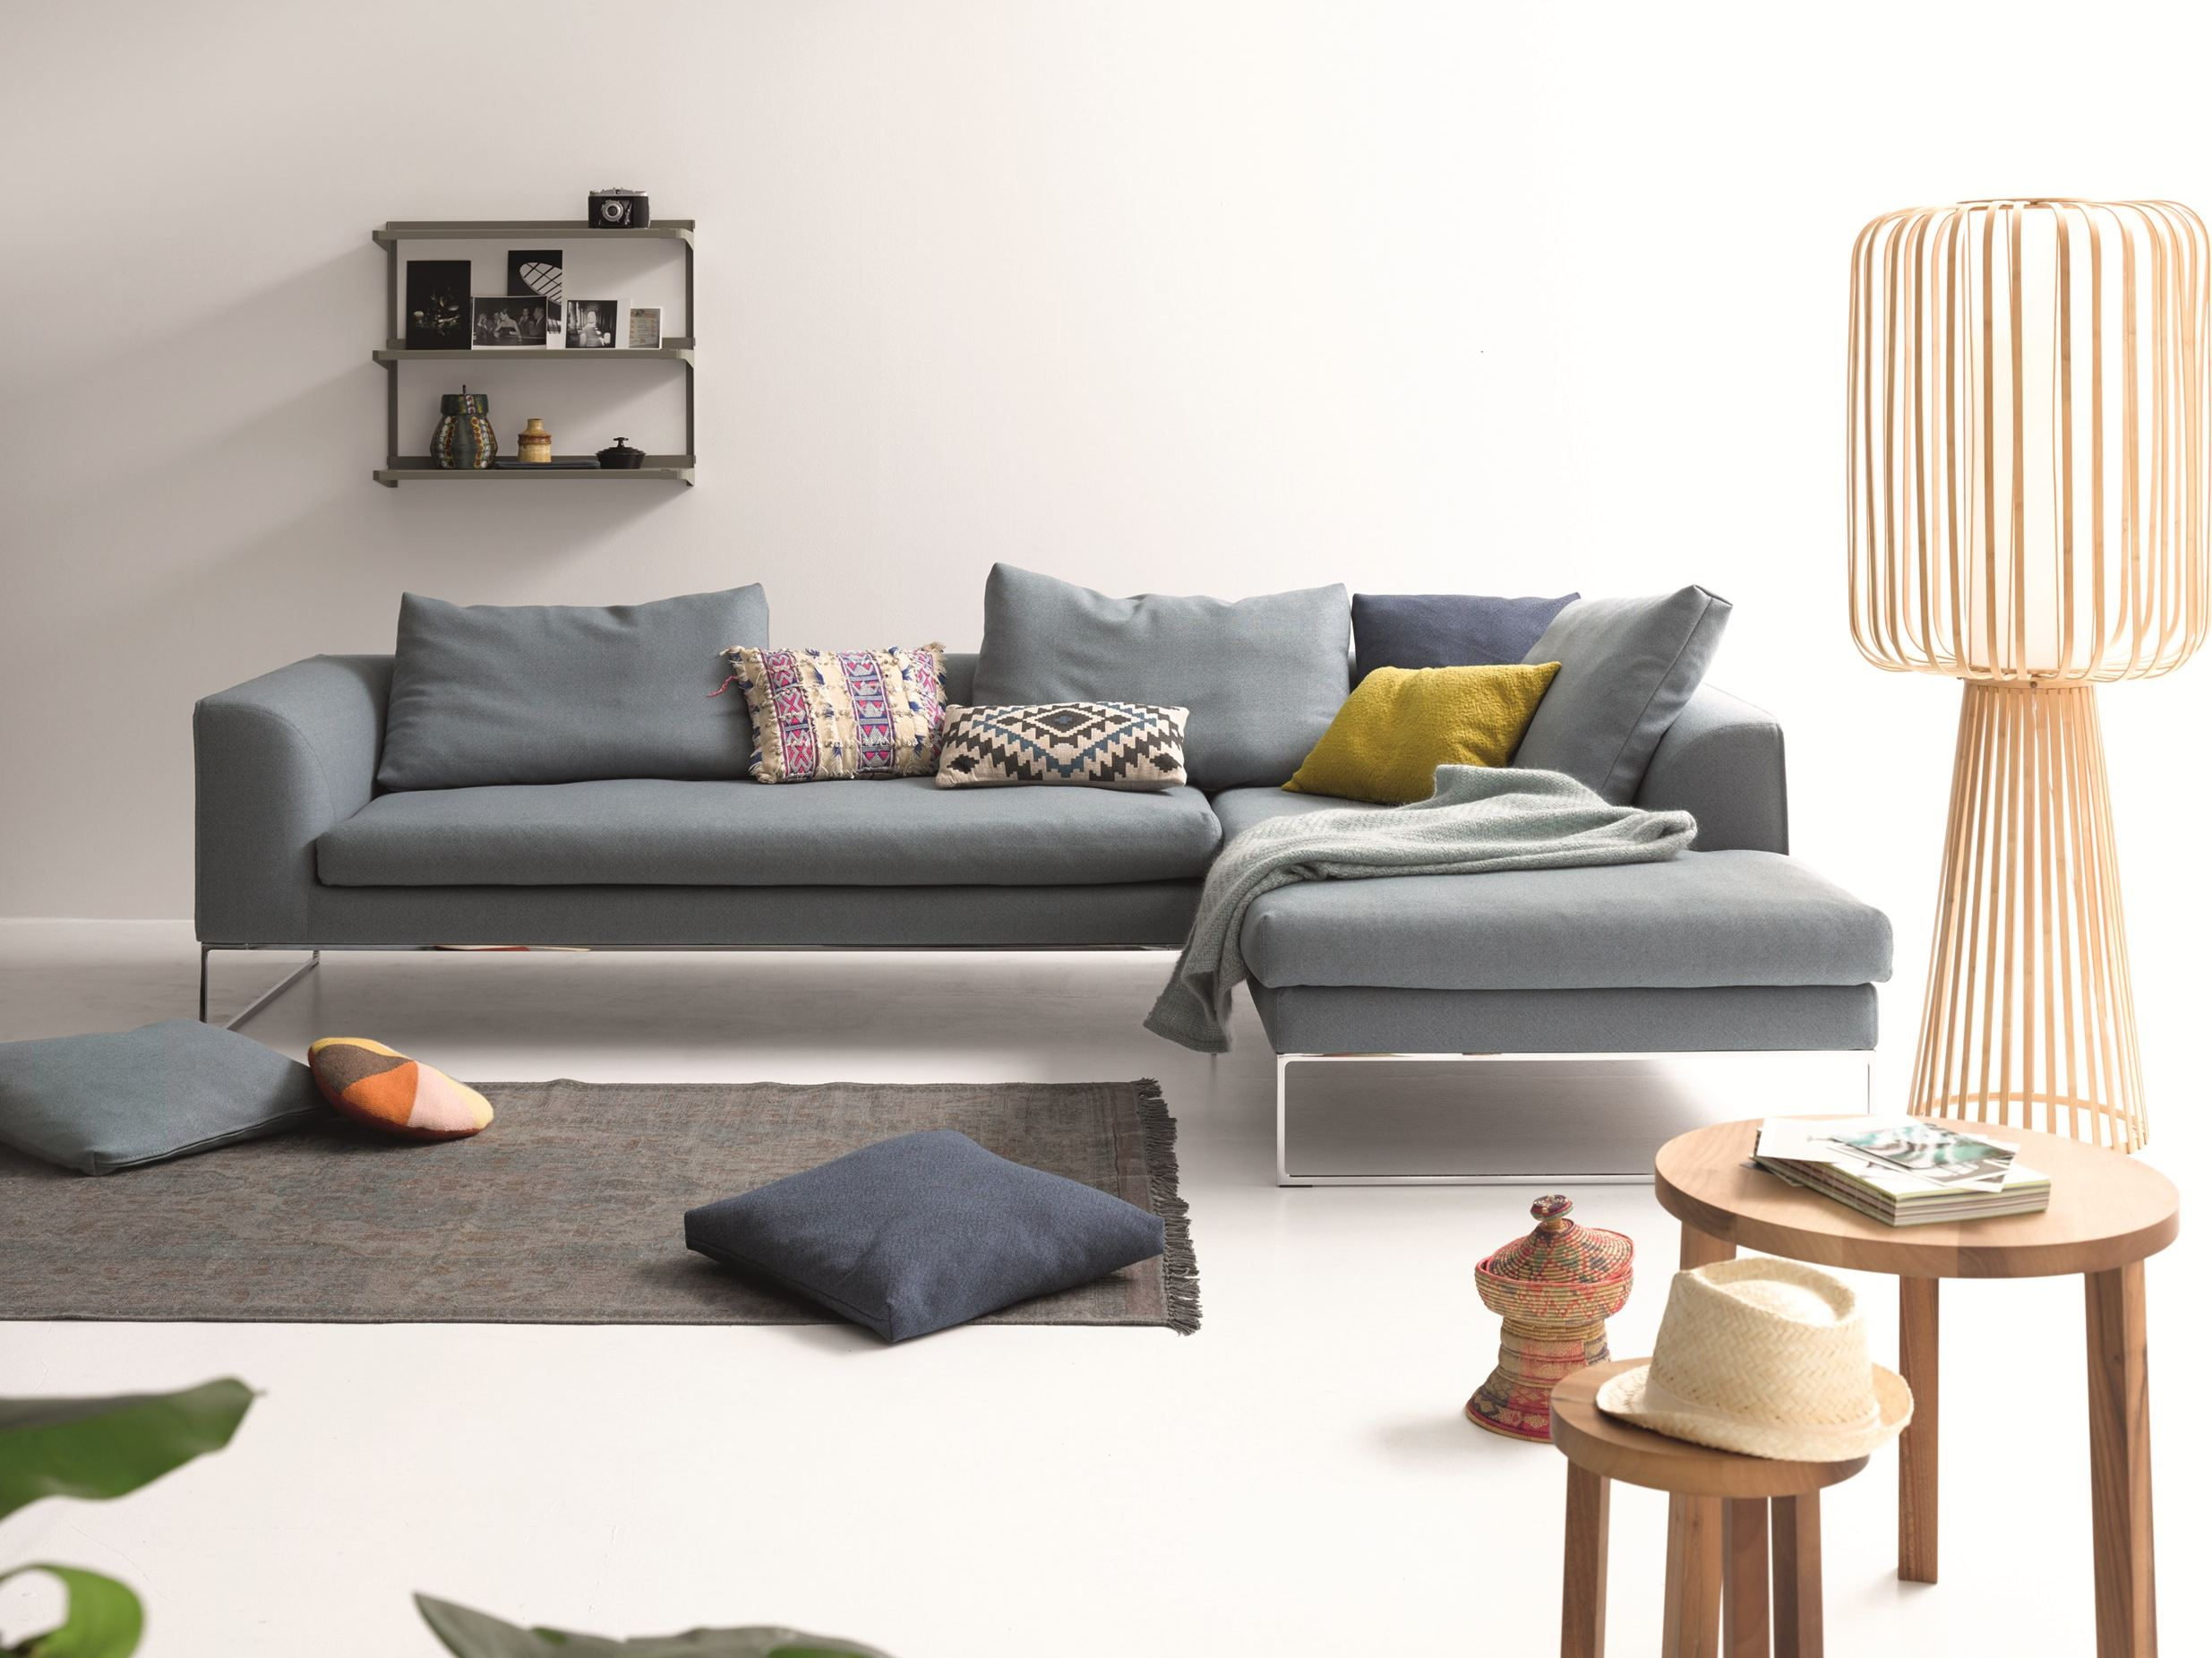 ... Sitzmobel Italien Ideas Home Design. Cor Sofas Archiproducts · Cor Sofas  Archiproducts